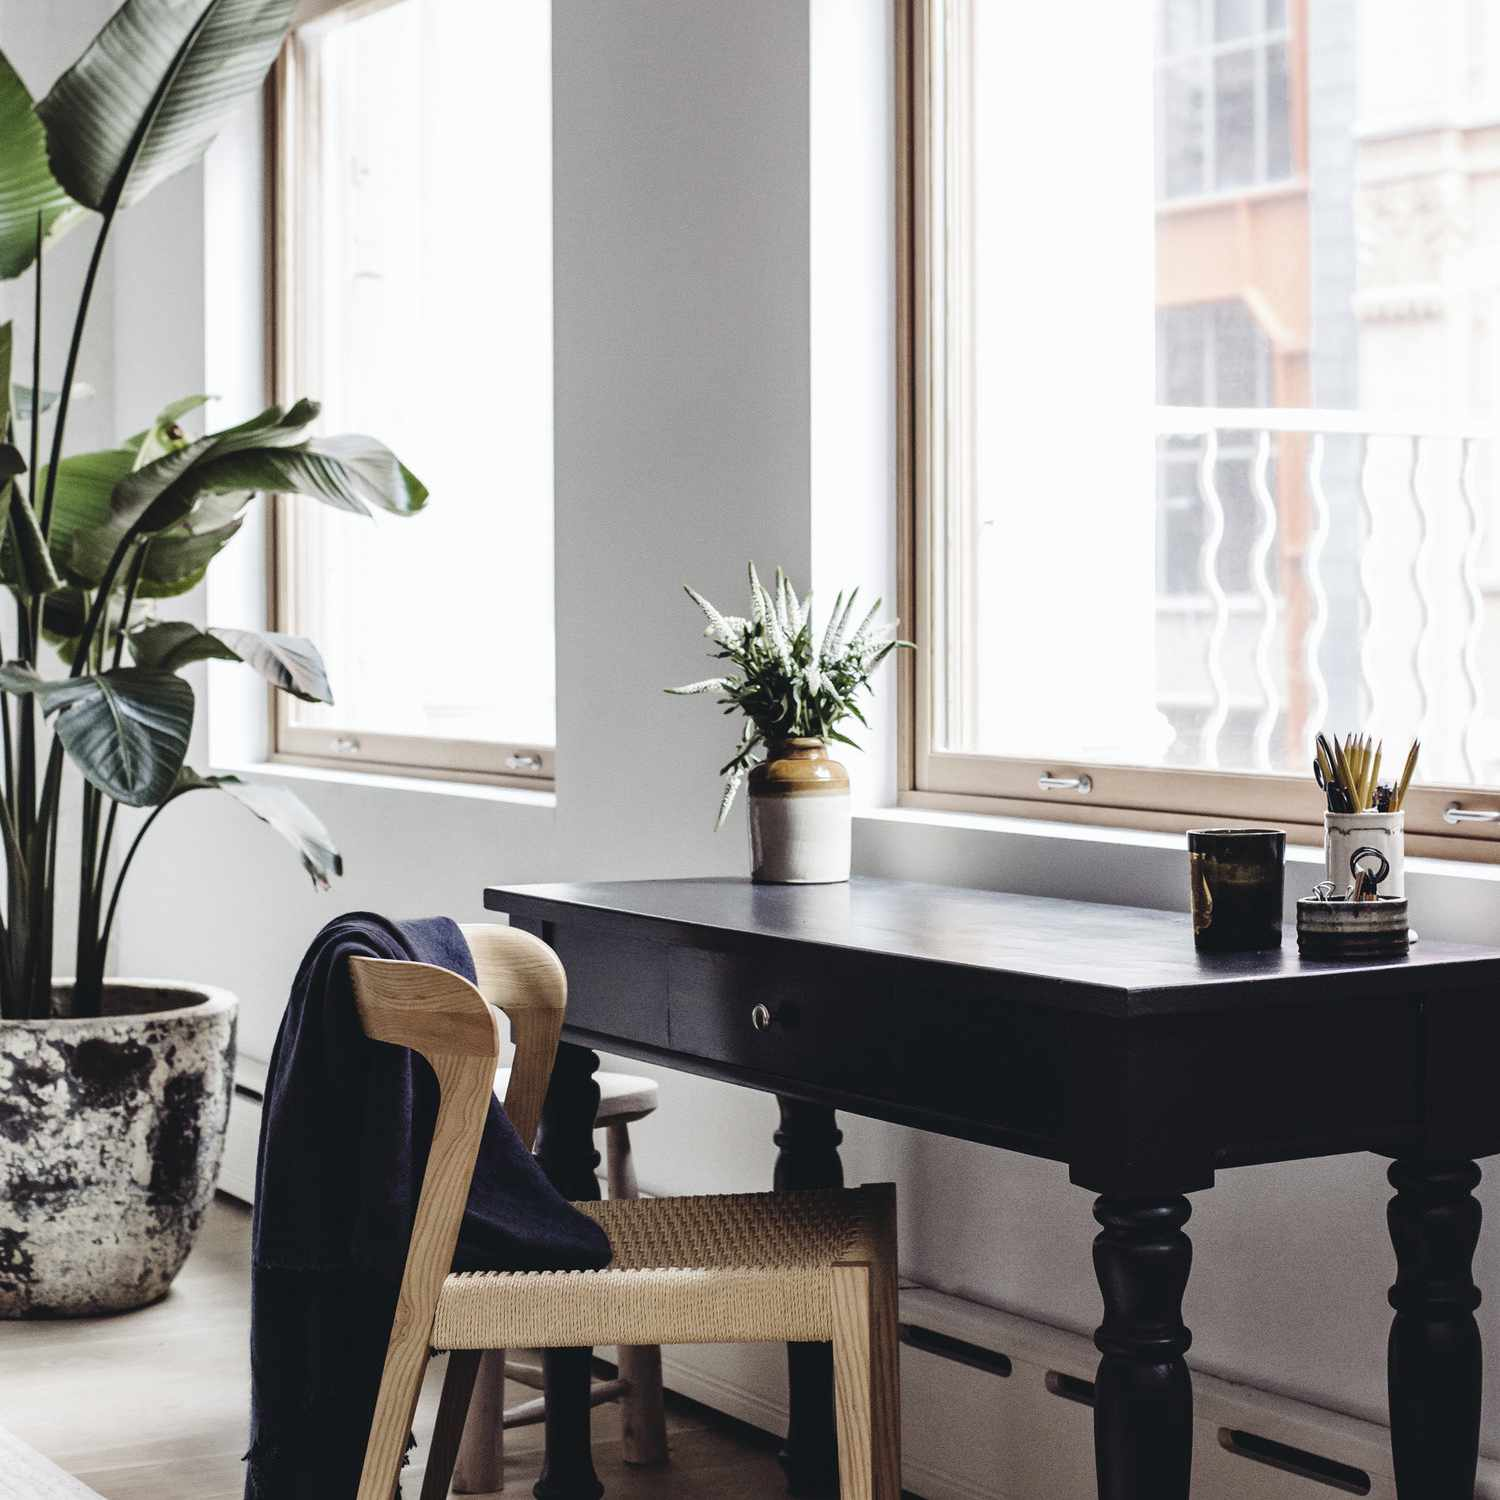 A small window-side workspace made up of a black wooden desk and a tan wooden chair